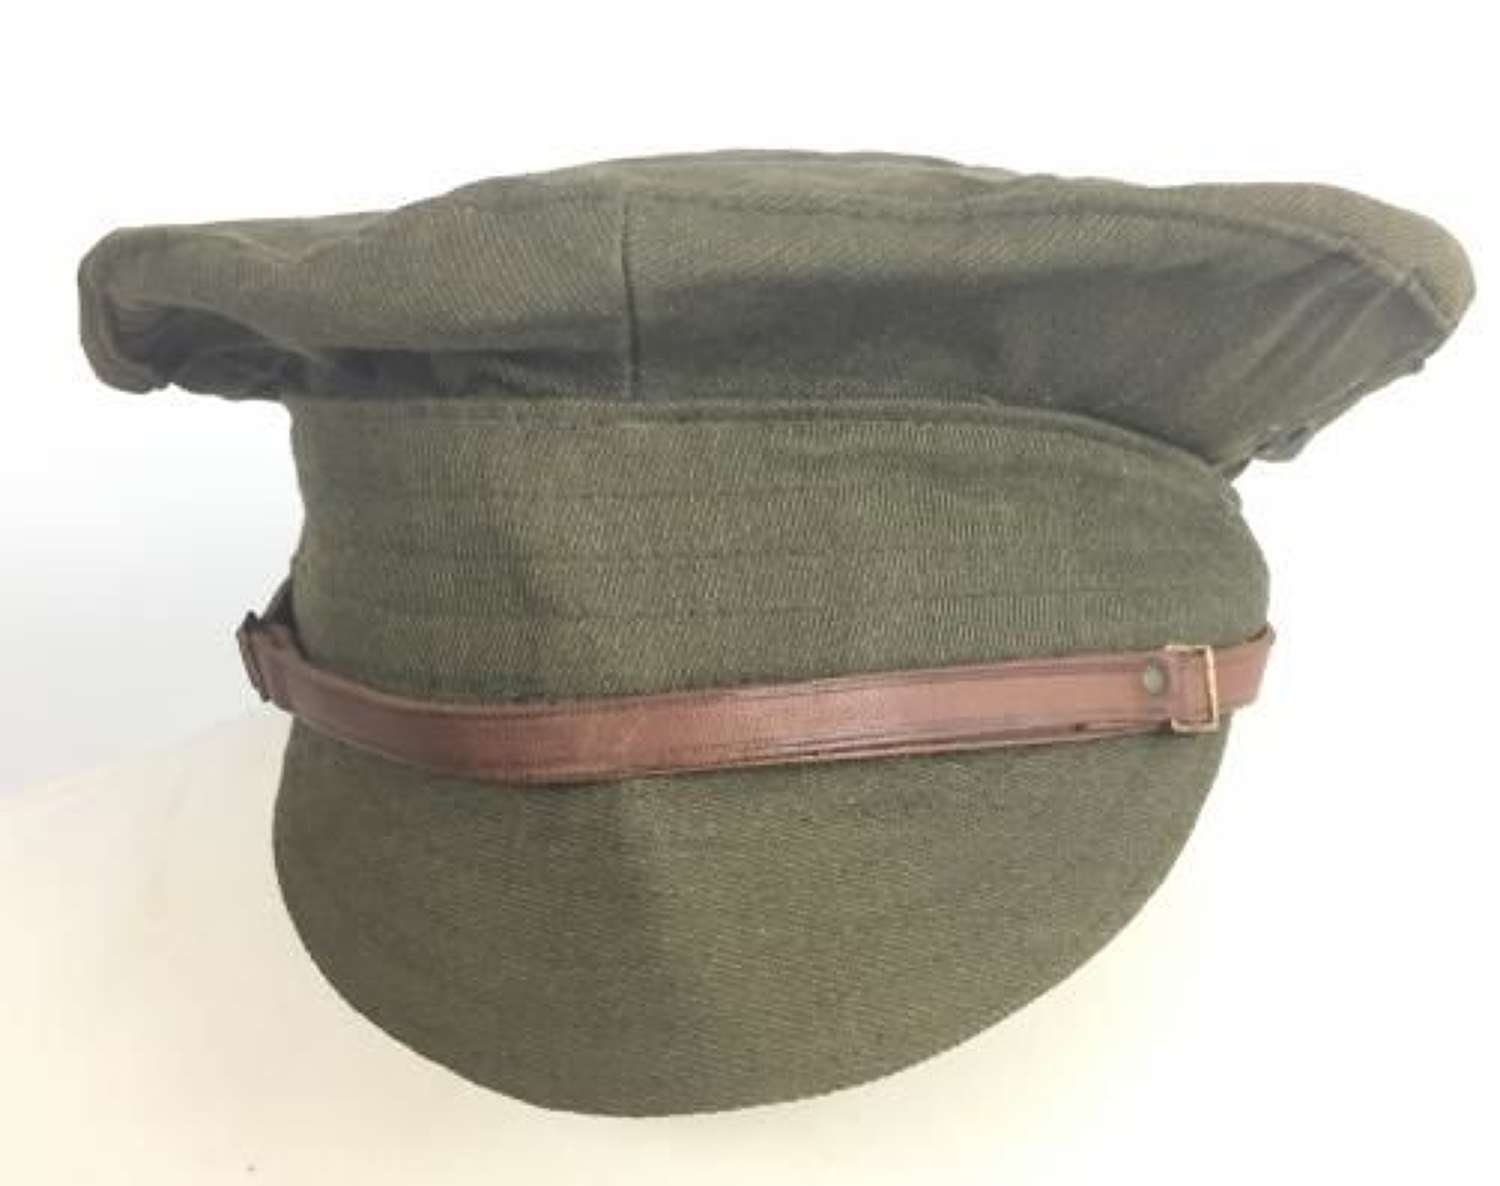 Original 1918 British Army Dated Gaberdine 'Denim' Trench Cap - Size 7 1/4